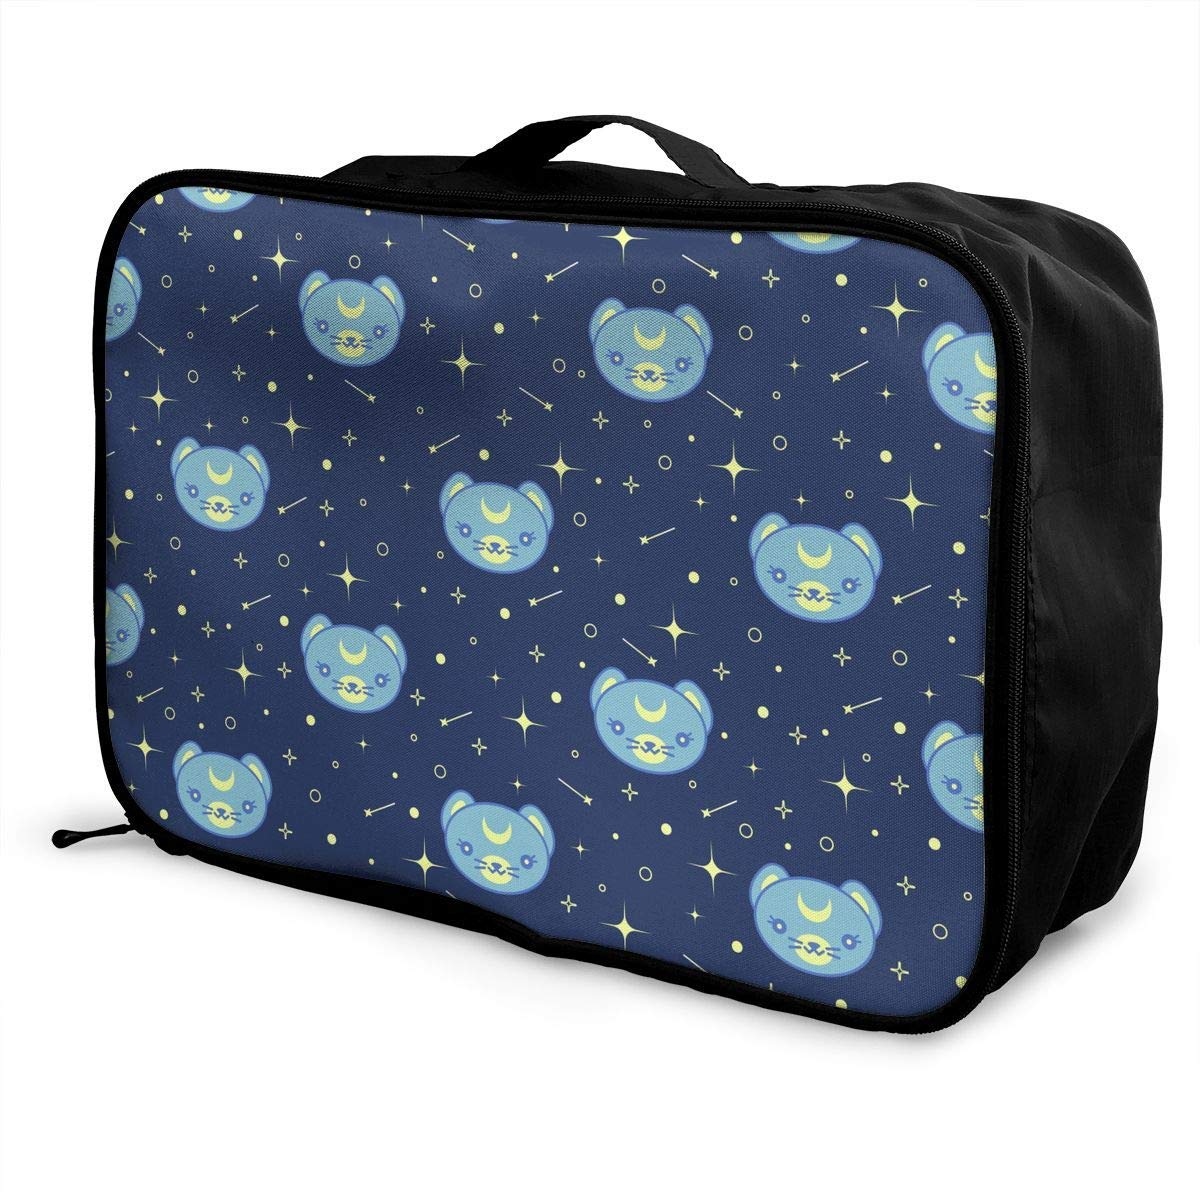 Blue Space Cat Galaxy Pattern JTRVW Travel Luggage Trolley Bag Portable Lightweight Suitcases Duffle Tote Bag Handbag